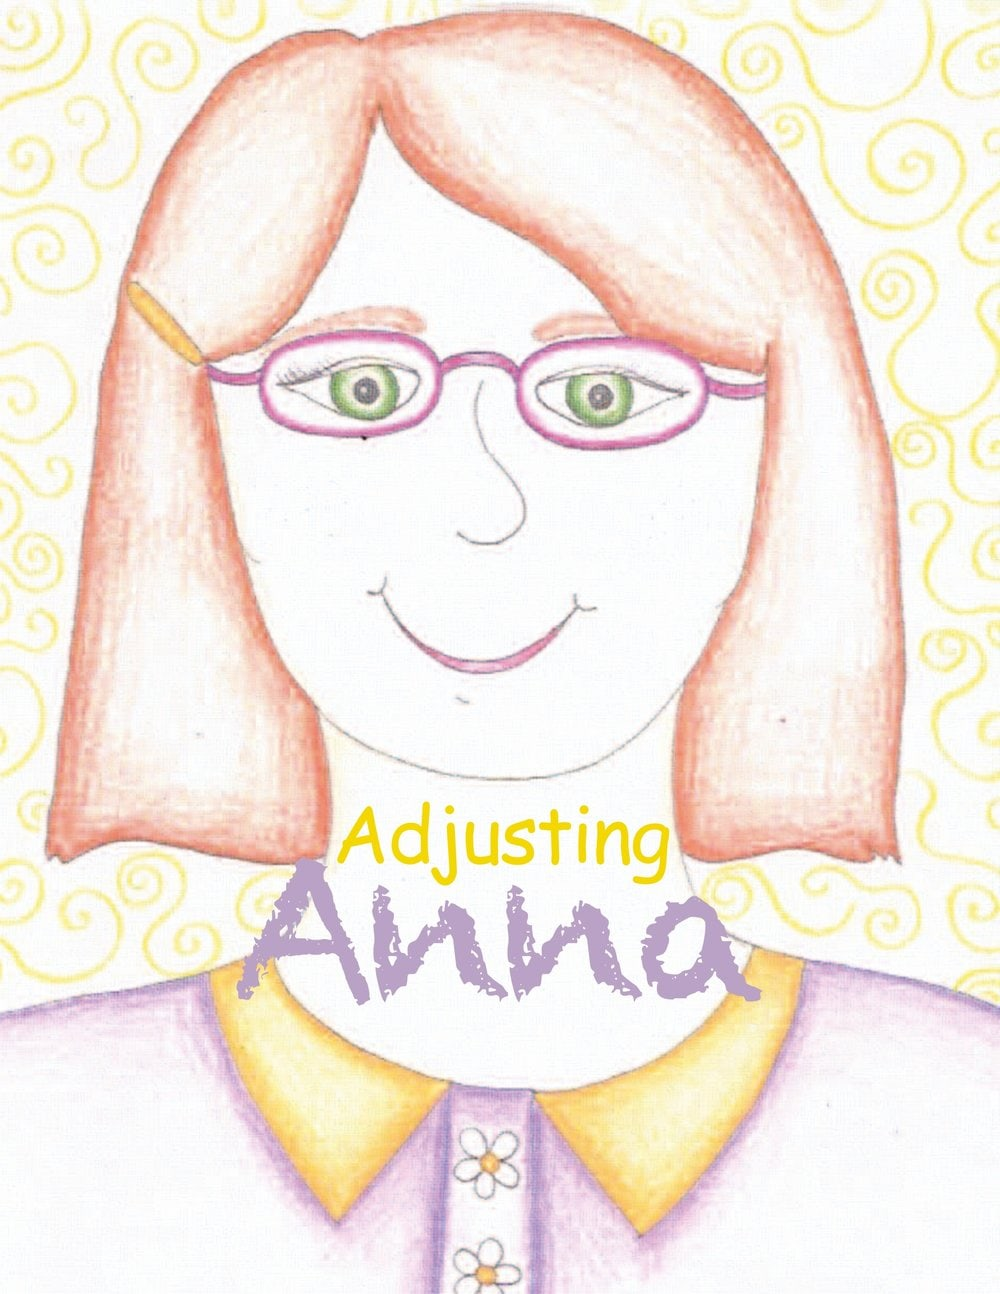 Adjusting Anna from Powerful You helps children discover coping strategies when faced with changes.